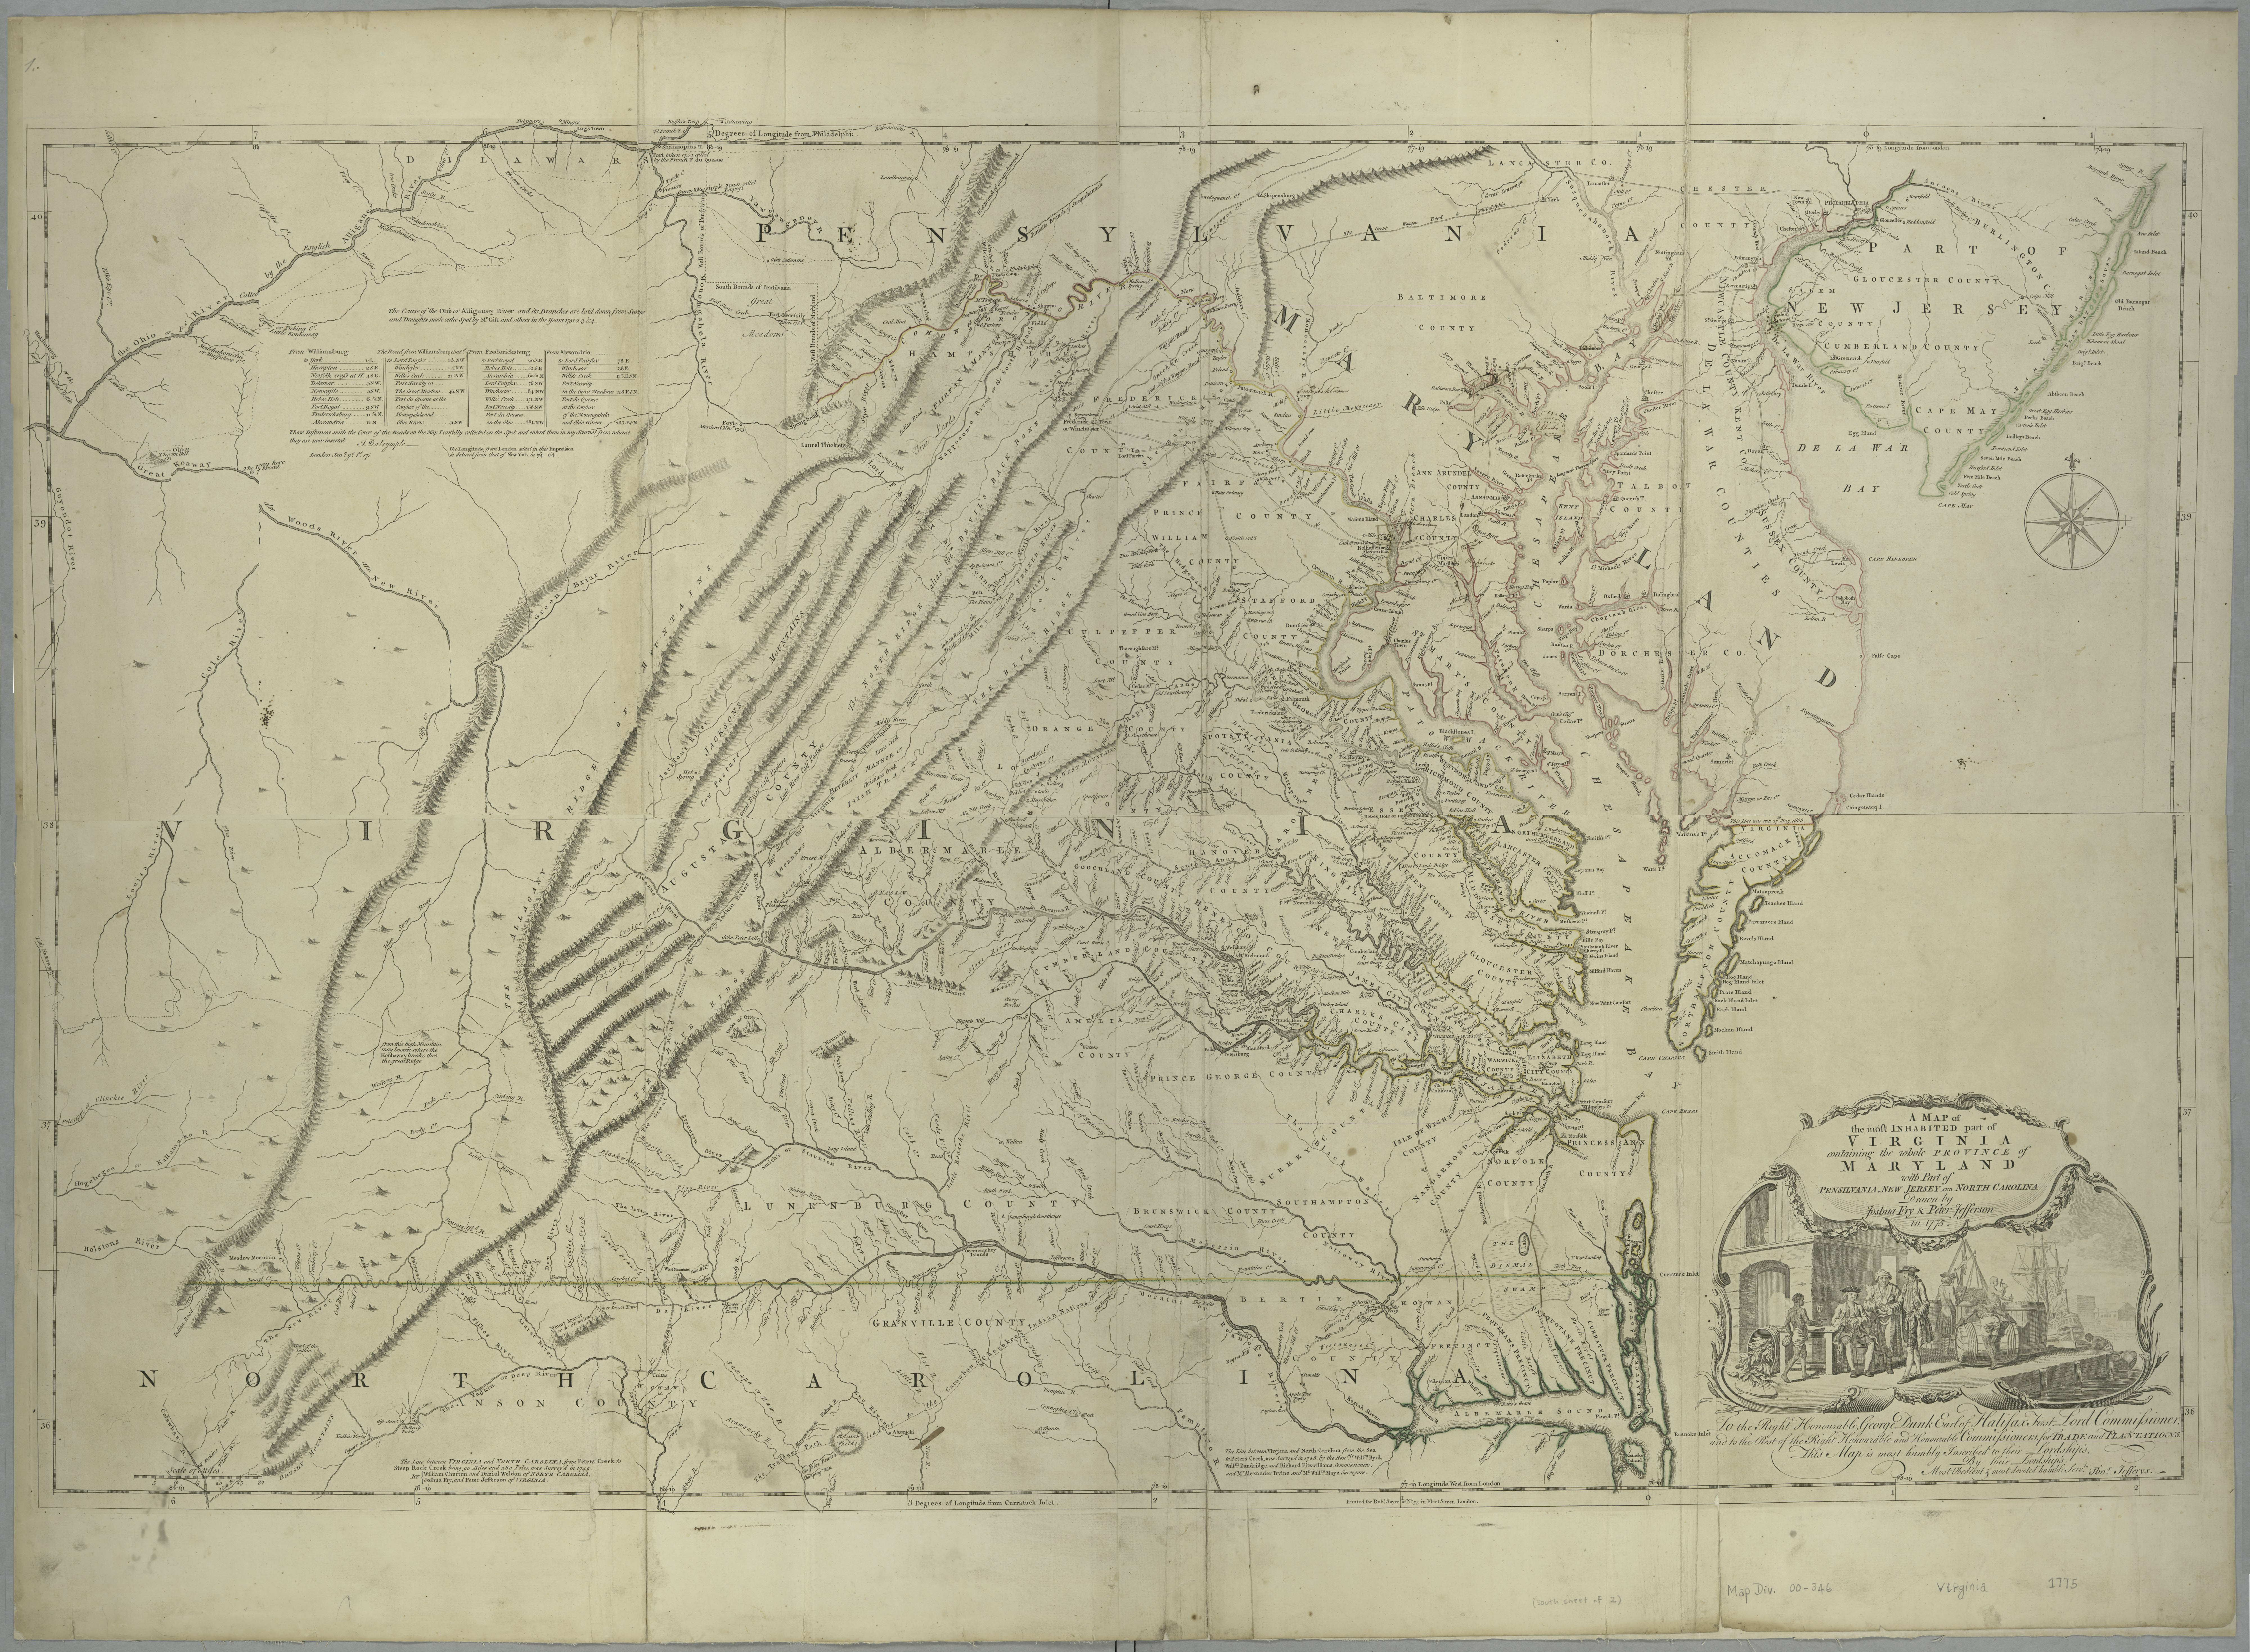 Westham is shown next to Richmond,  Virginia in 1775